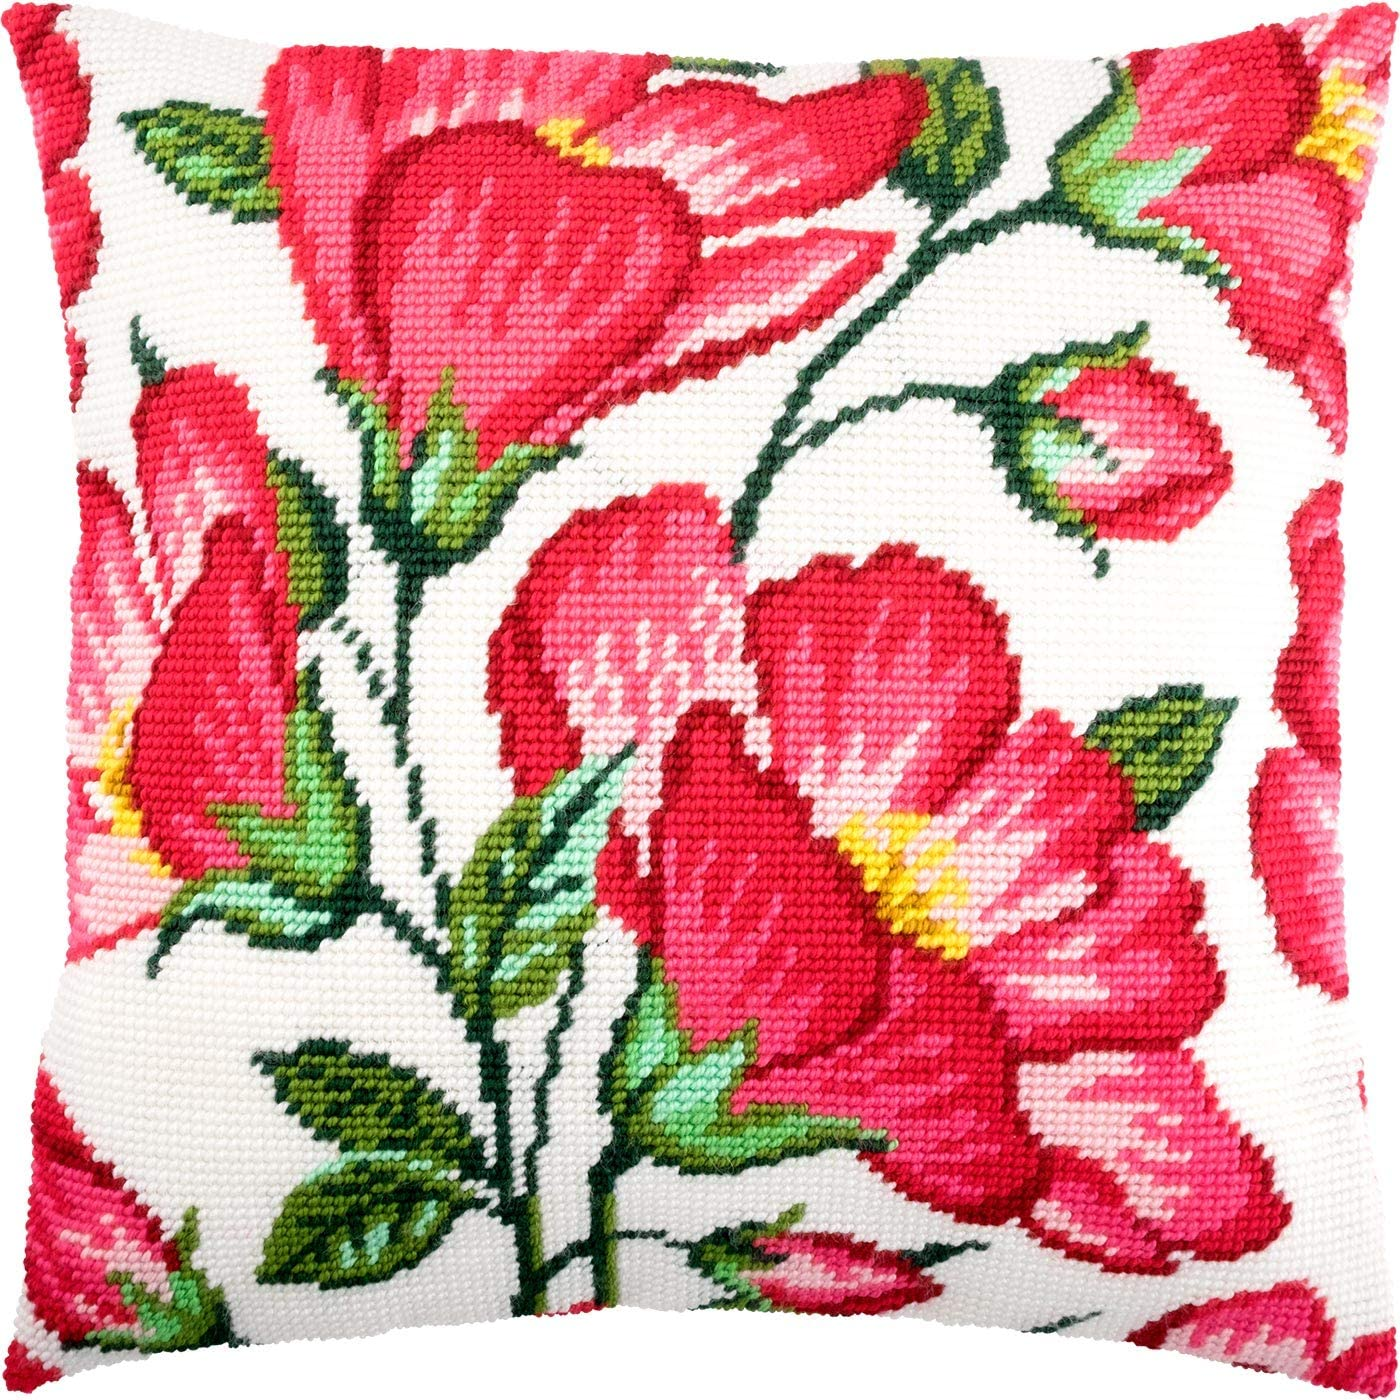 Mallow. Needlepoint Kit. Throw Pillow Popular standard New York Mall 16×16 Printed Inches. Tape